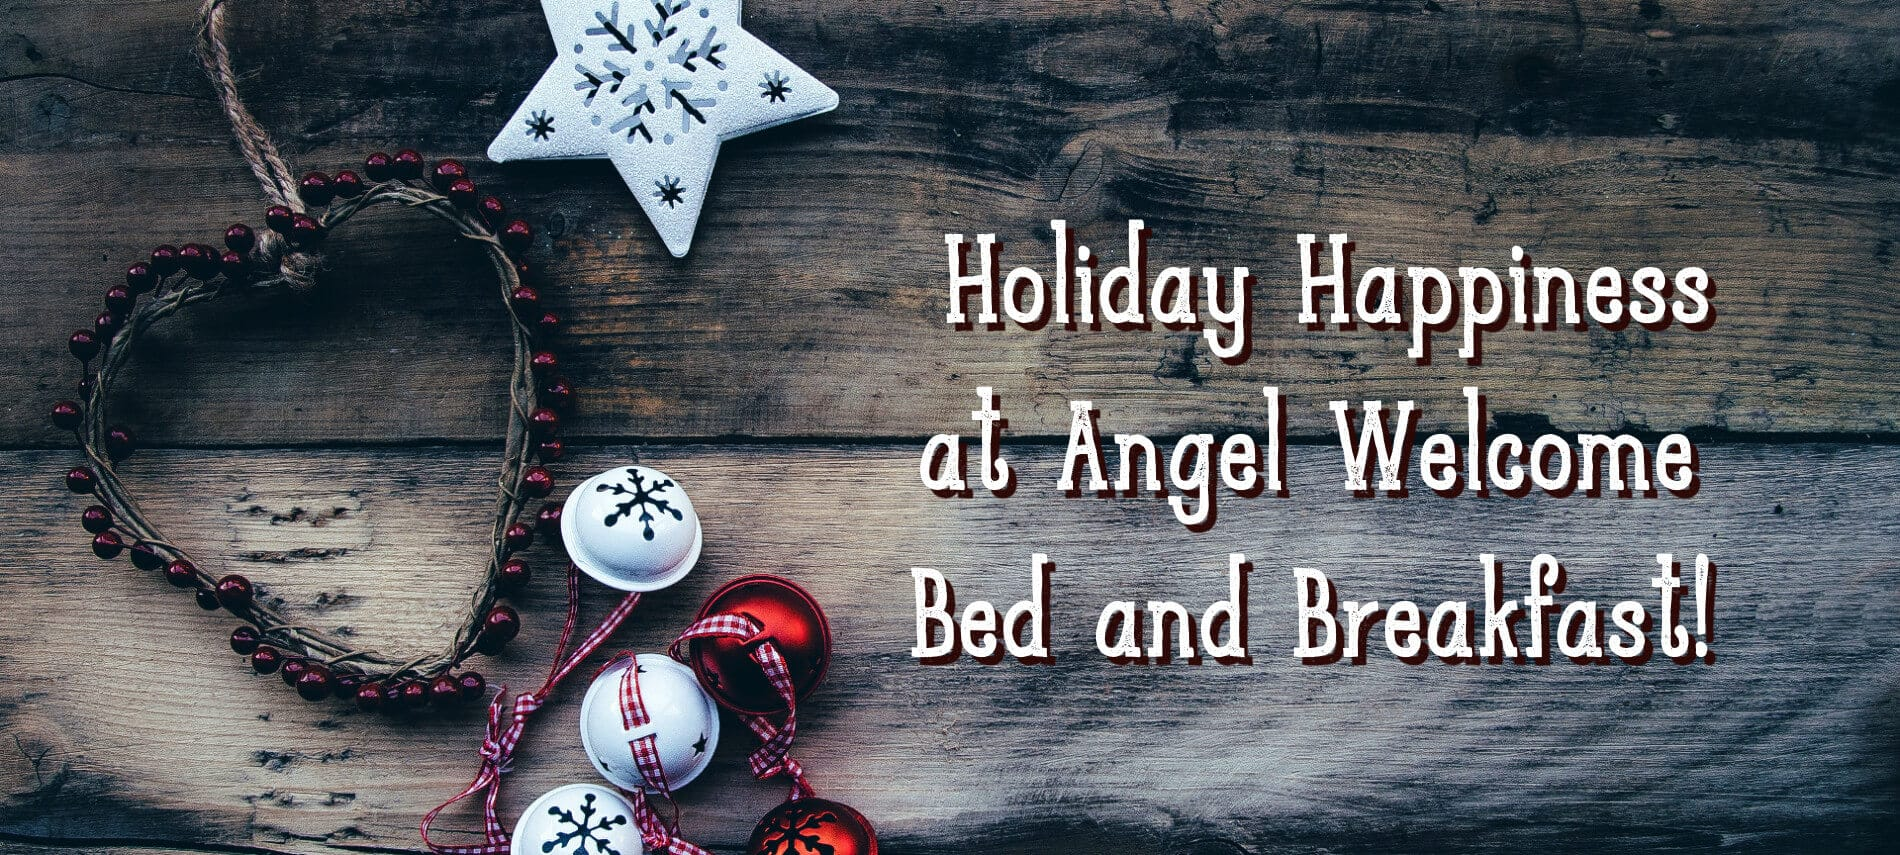 Rustic holiday background with Western-style text: Holiday Happiness at Angel Welcome Bed and Breakfast!